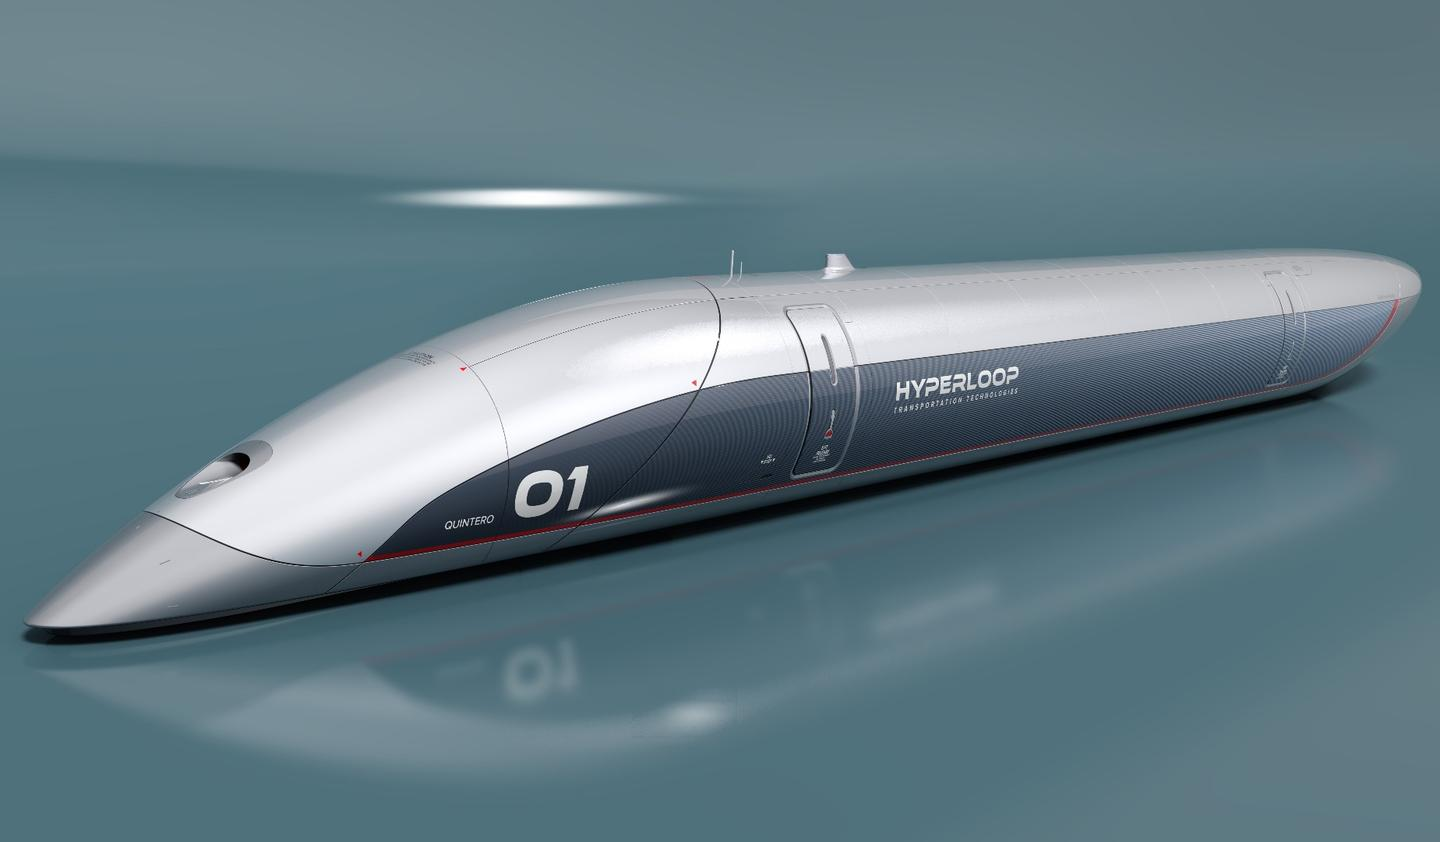 A new agreement between Hyperloop Transportation Technologies, the Northern Ohio Areawide Coordinating Agency (NOACA) and the Illinois' Department of Transportation (IDOT) is exploring a high-speed transport link between the two states